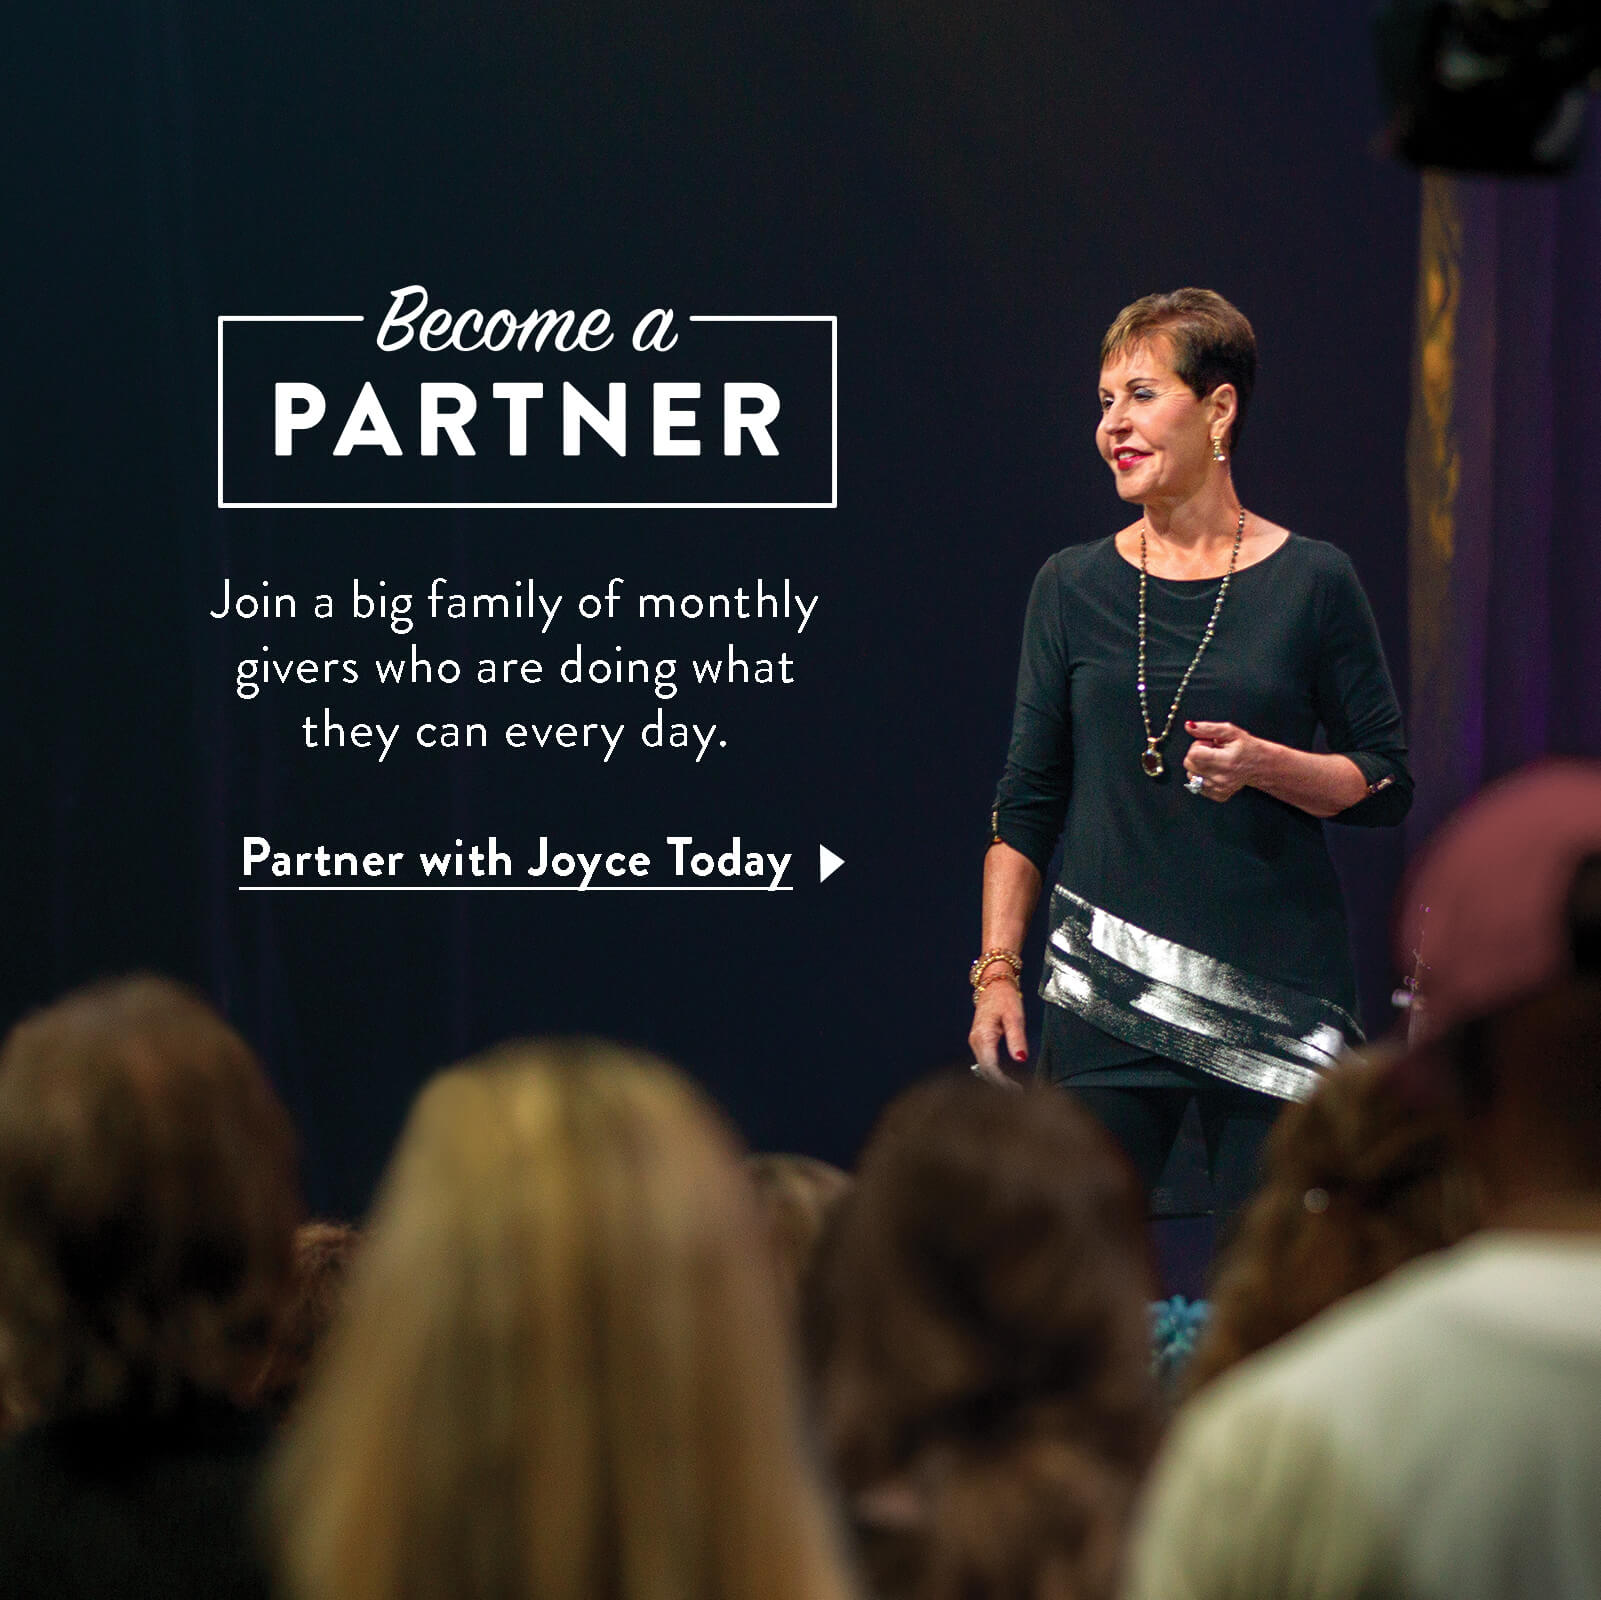 Joyce speaking in Atlanta with text asking you to become a partner